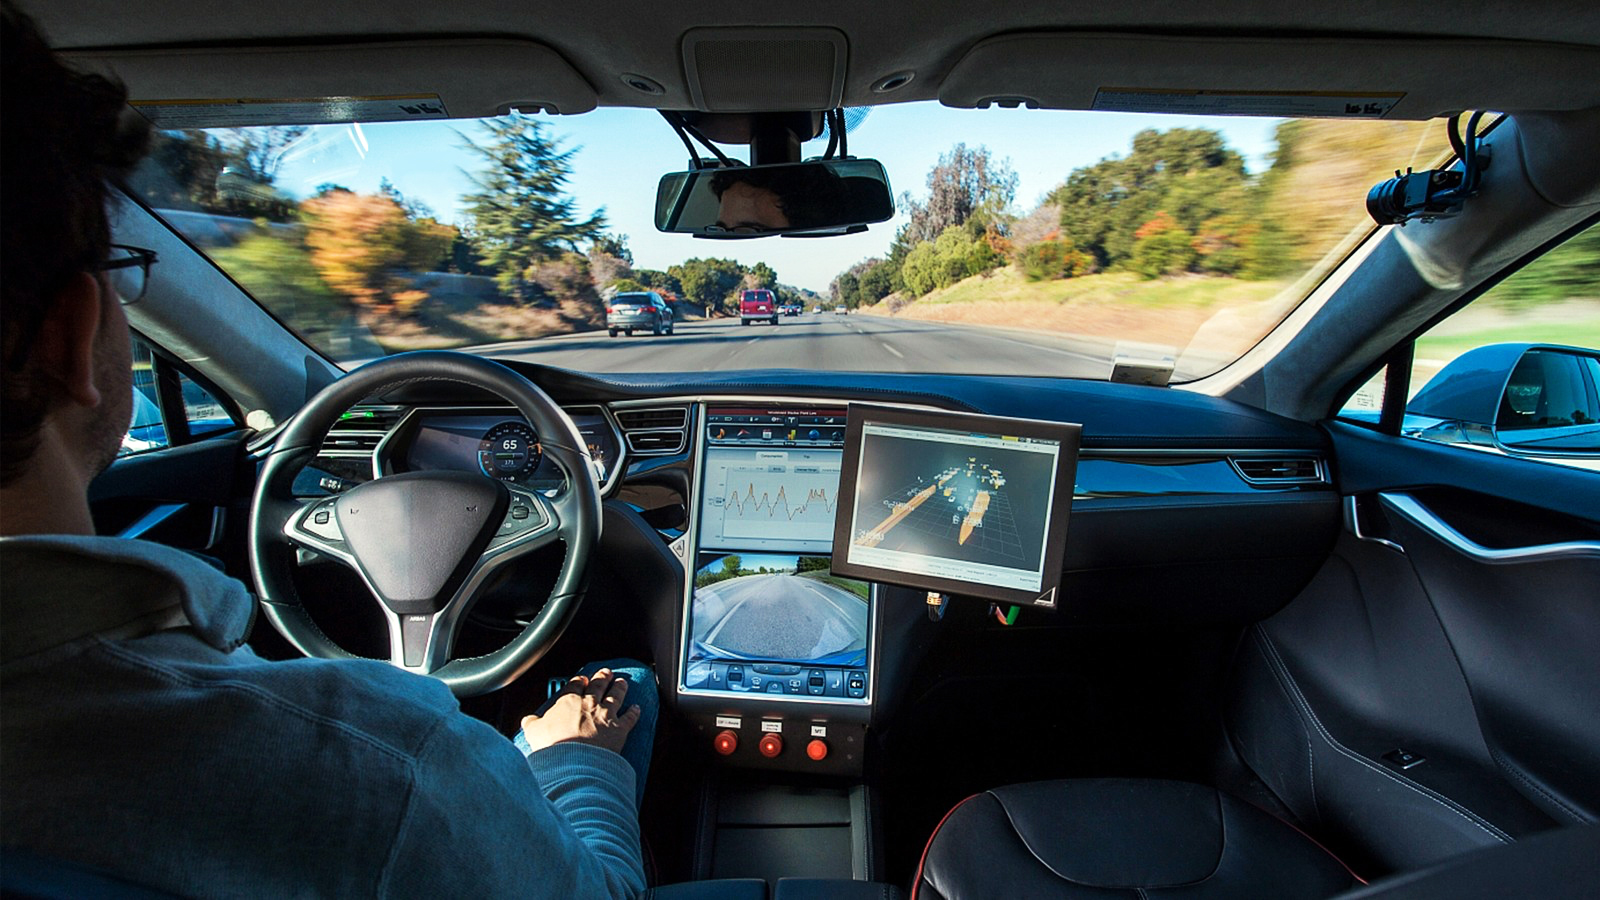 Bosch is in the lead on the path to automated driving